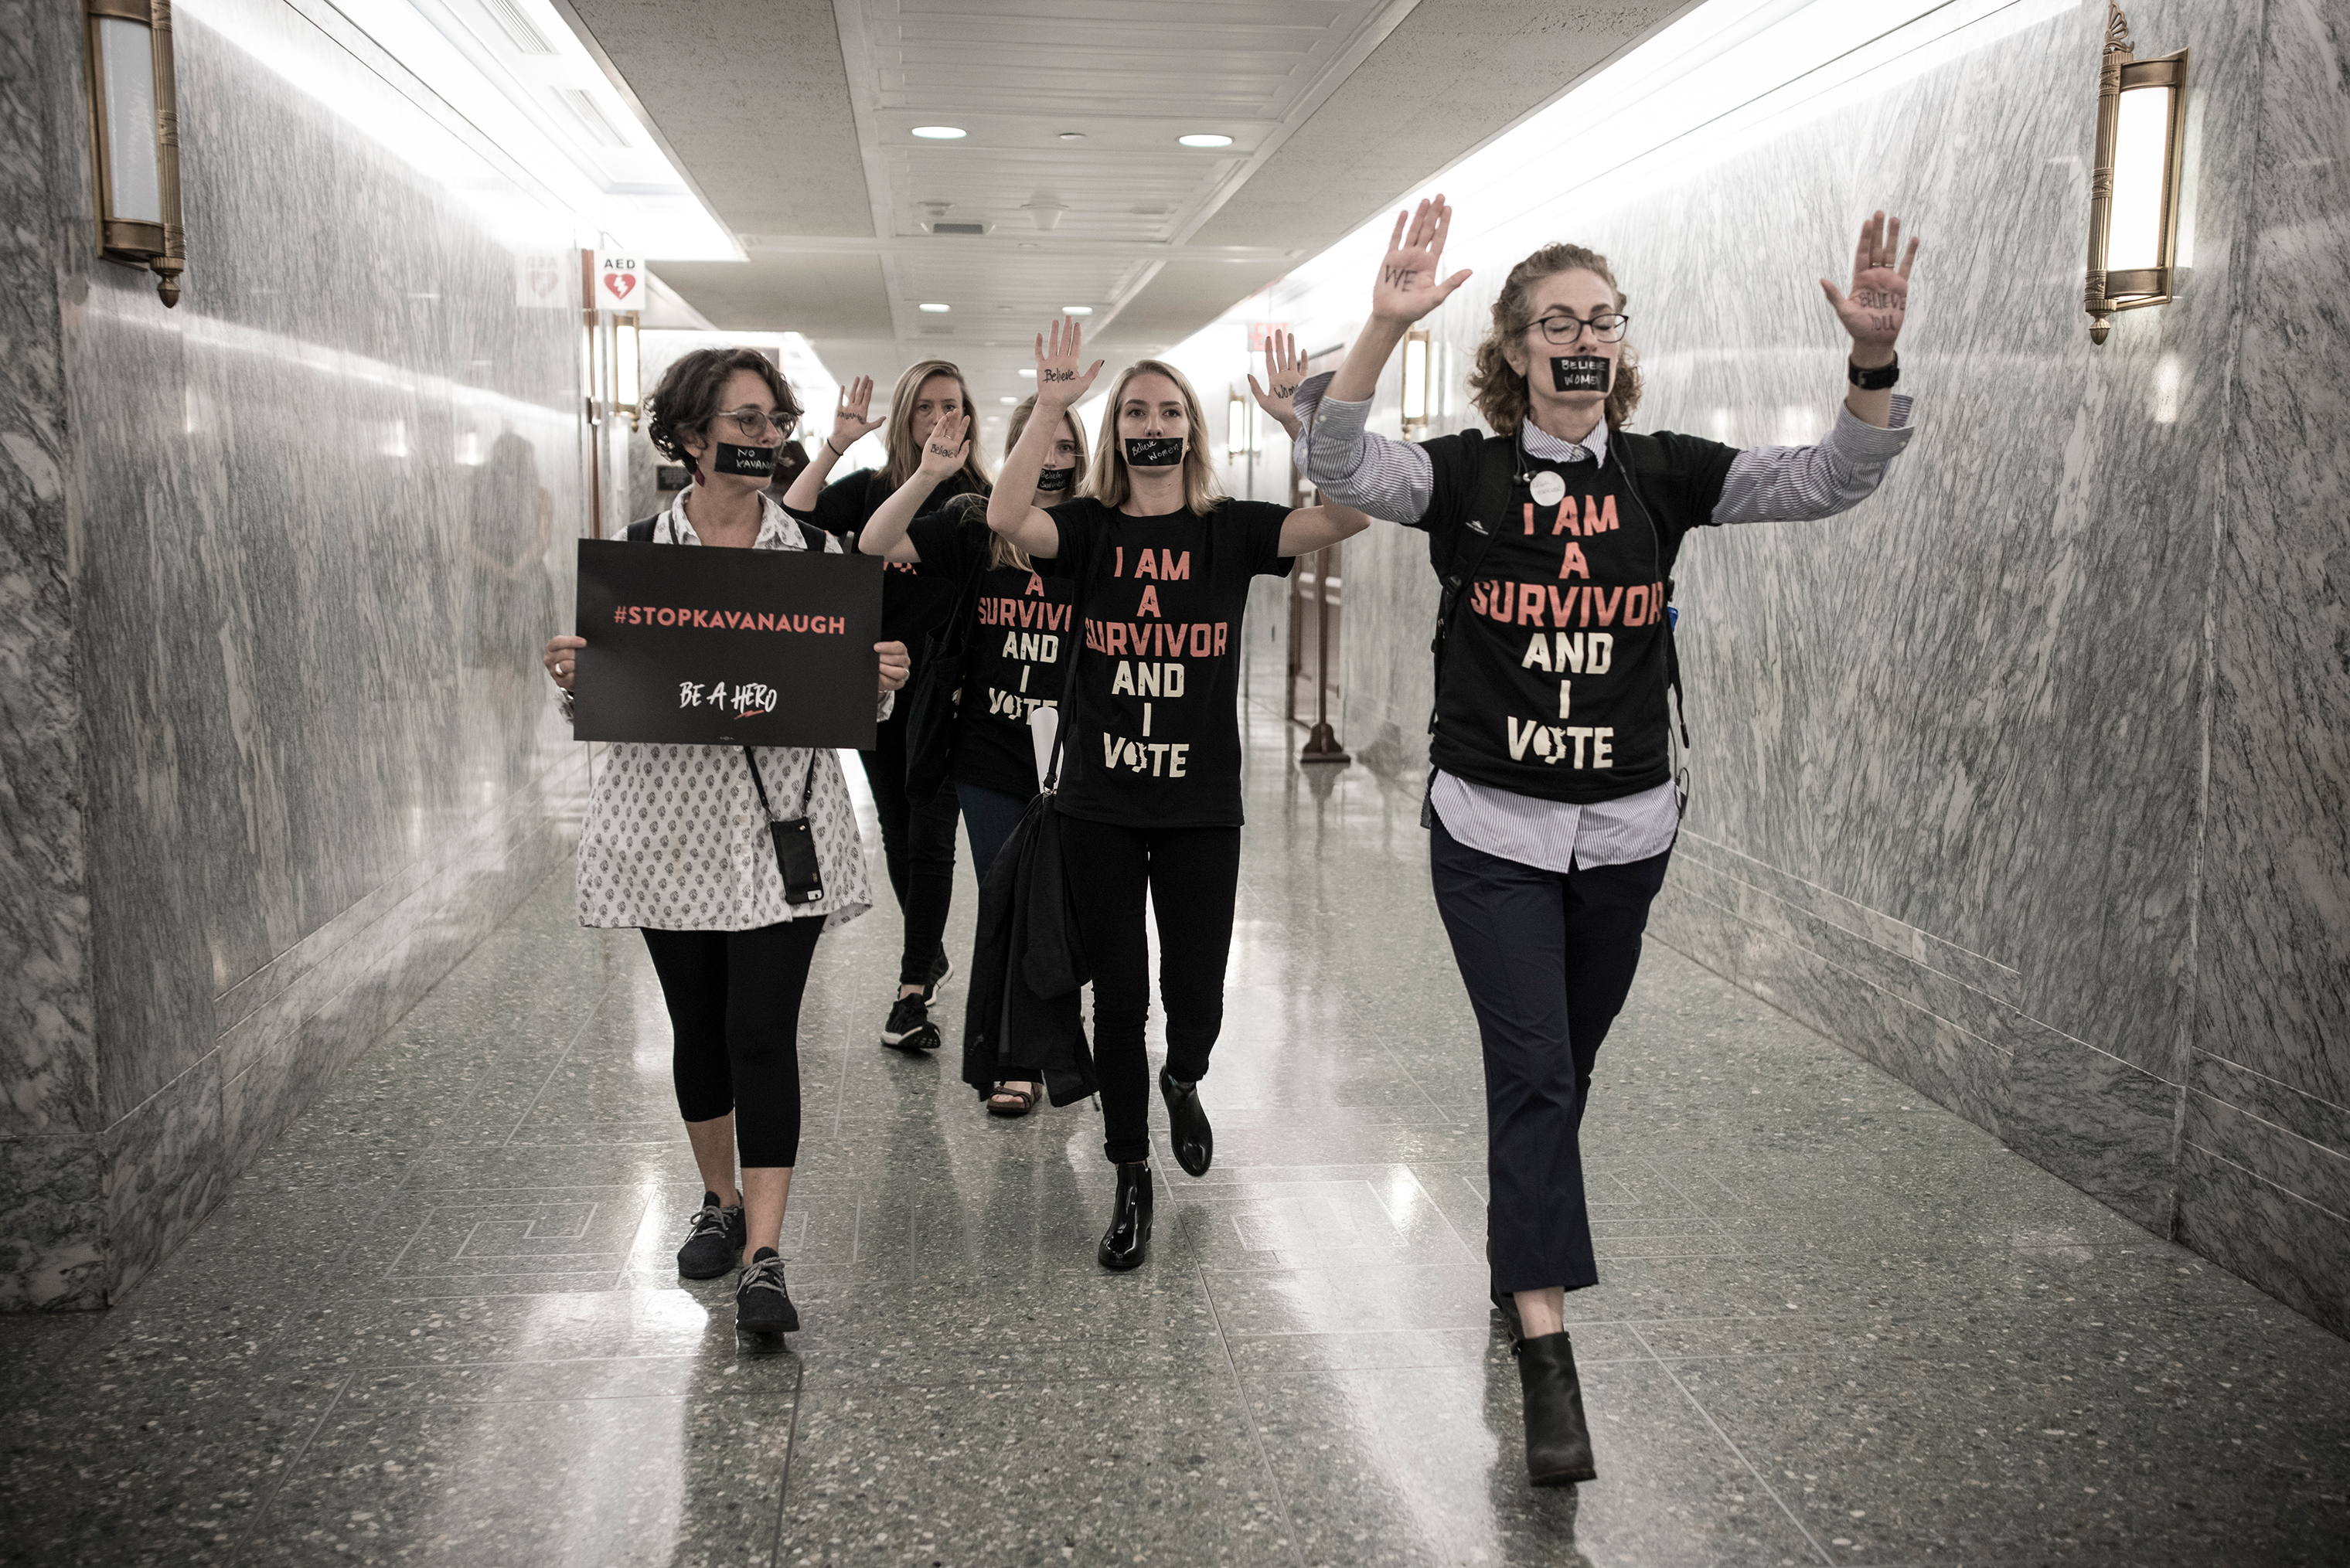 Protesters walk through the hallway of the Dirksen Senate Office Building on Sept. 27.